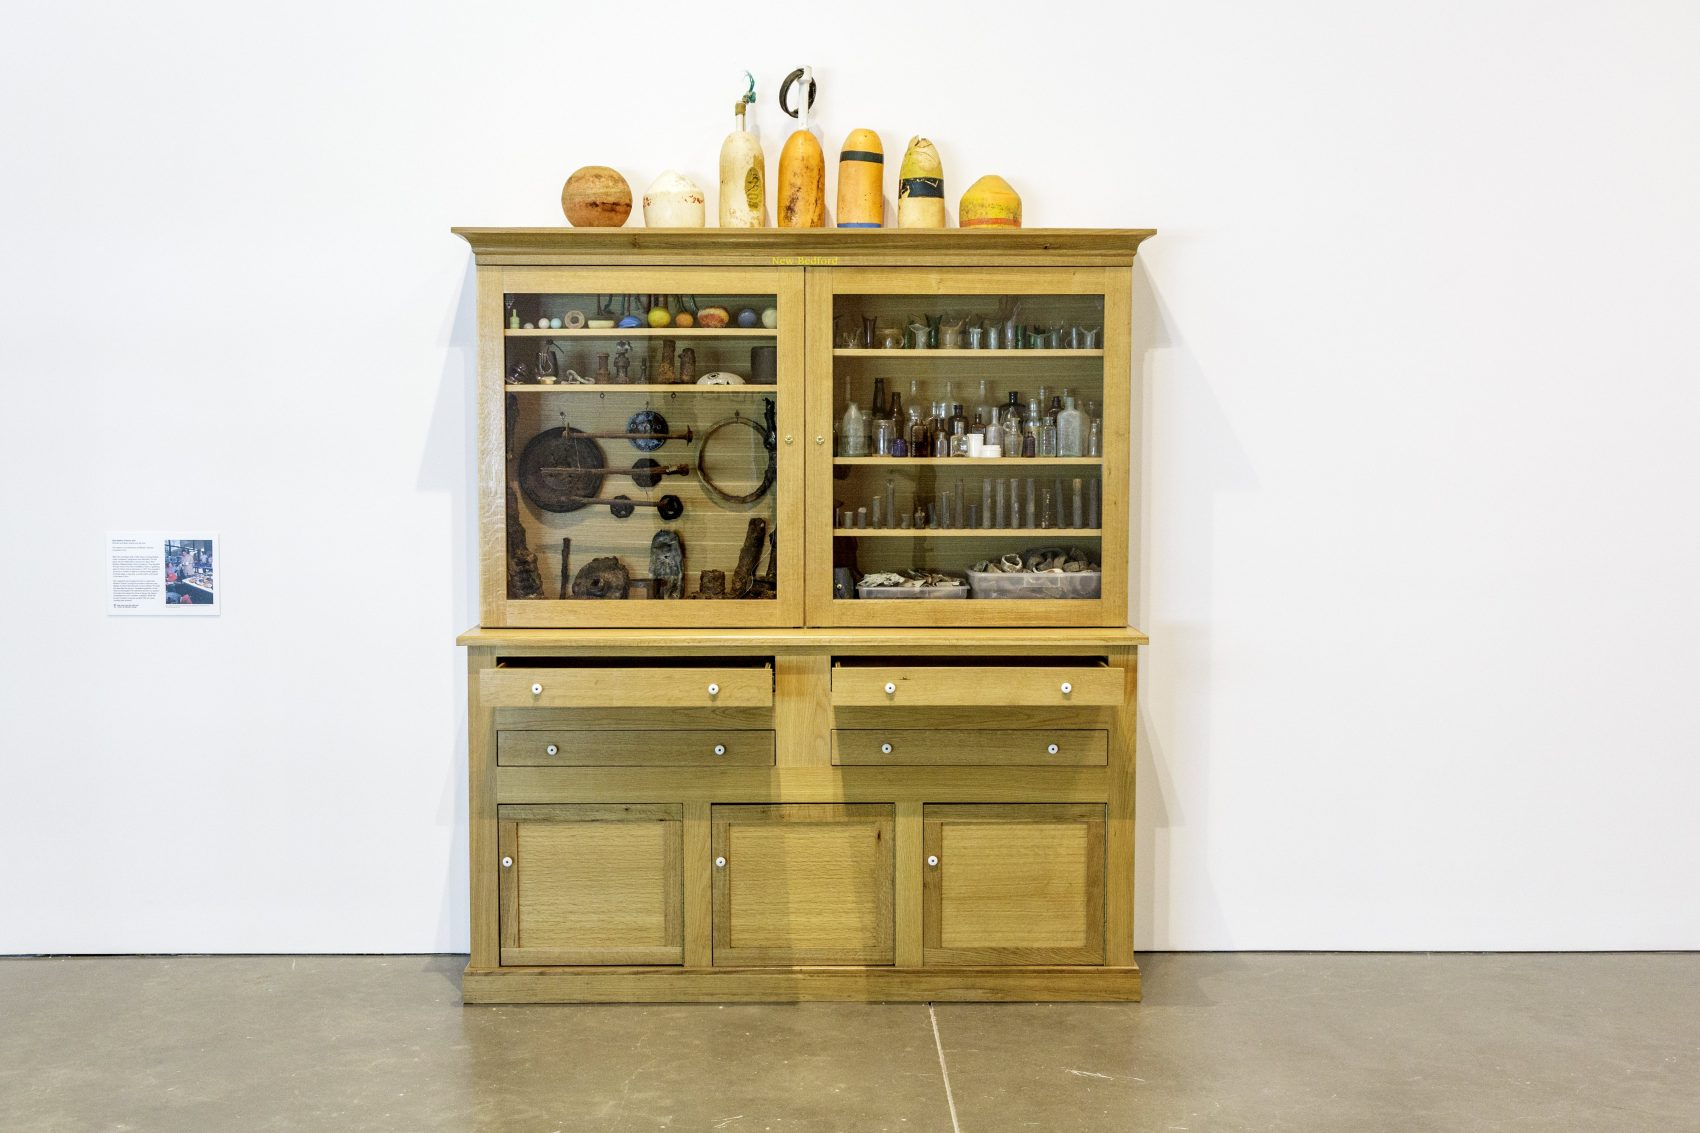 Mark Dion, New Bedford Cabinet, 2001. Wooden-and-glass cabinet and dig finds, 104 × 74 × 19 inches (264.2 × 188 × 48.3 cm). The Institute of Contemporary Art/Boston, General Acquisition Fund. Courtesy the artist and Tanya Bonakdar Gallery, New York. Photo by John Kennard. © Mark Dion